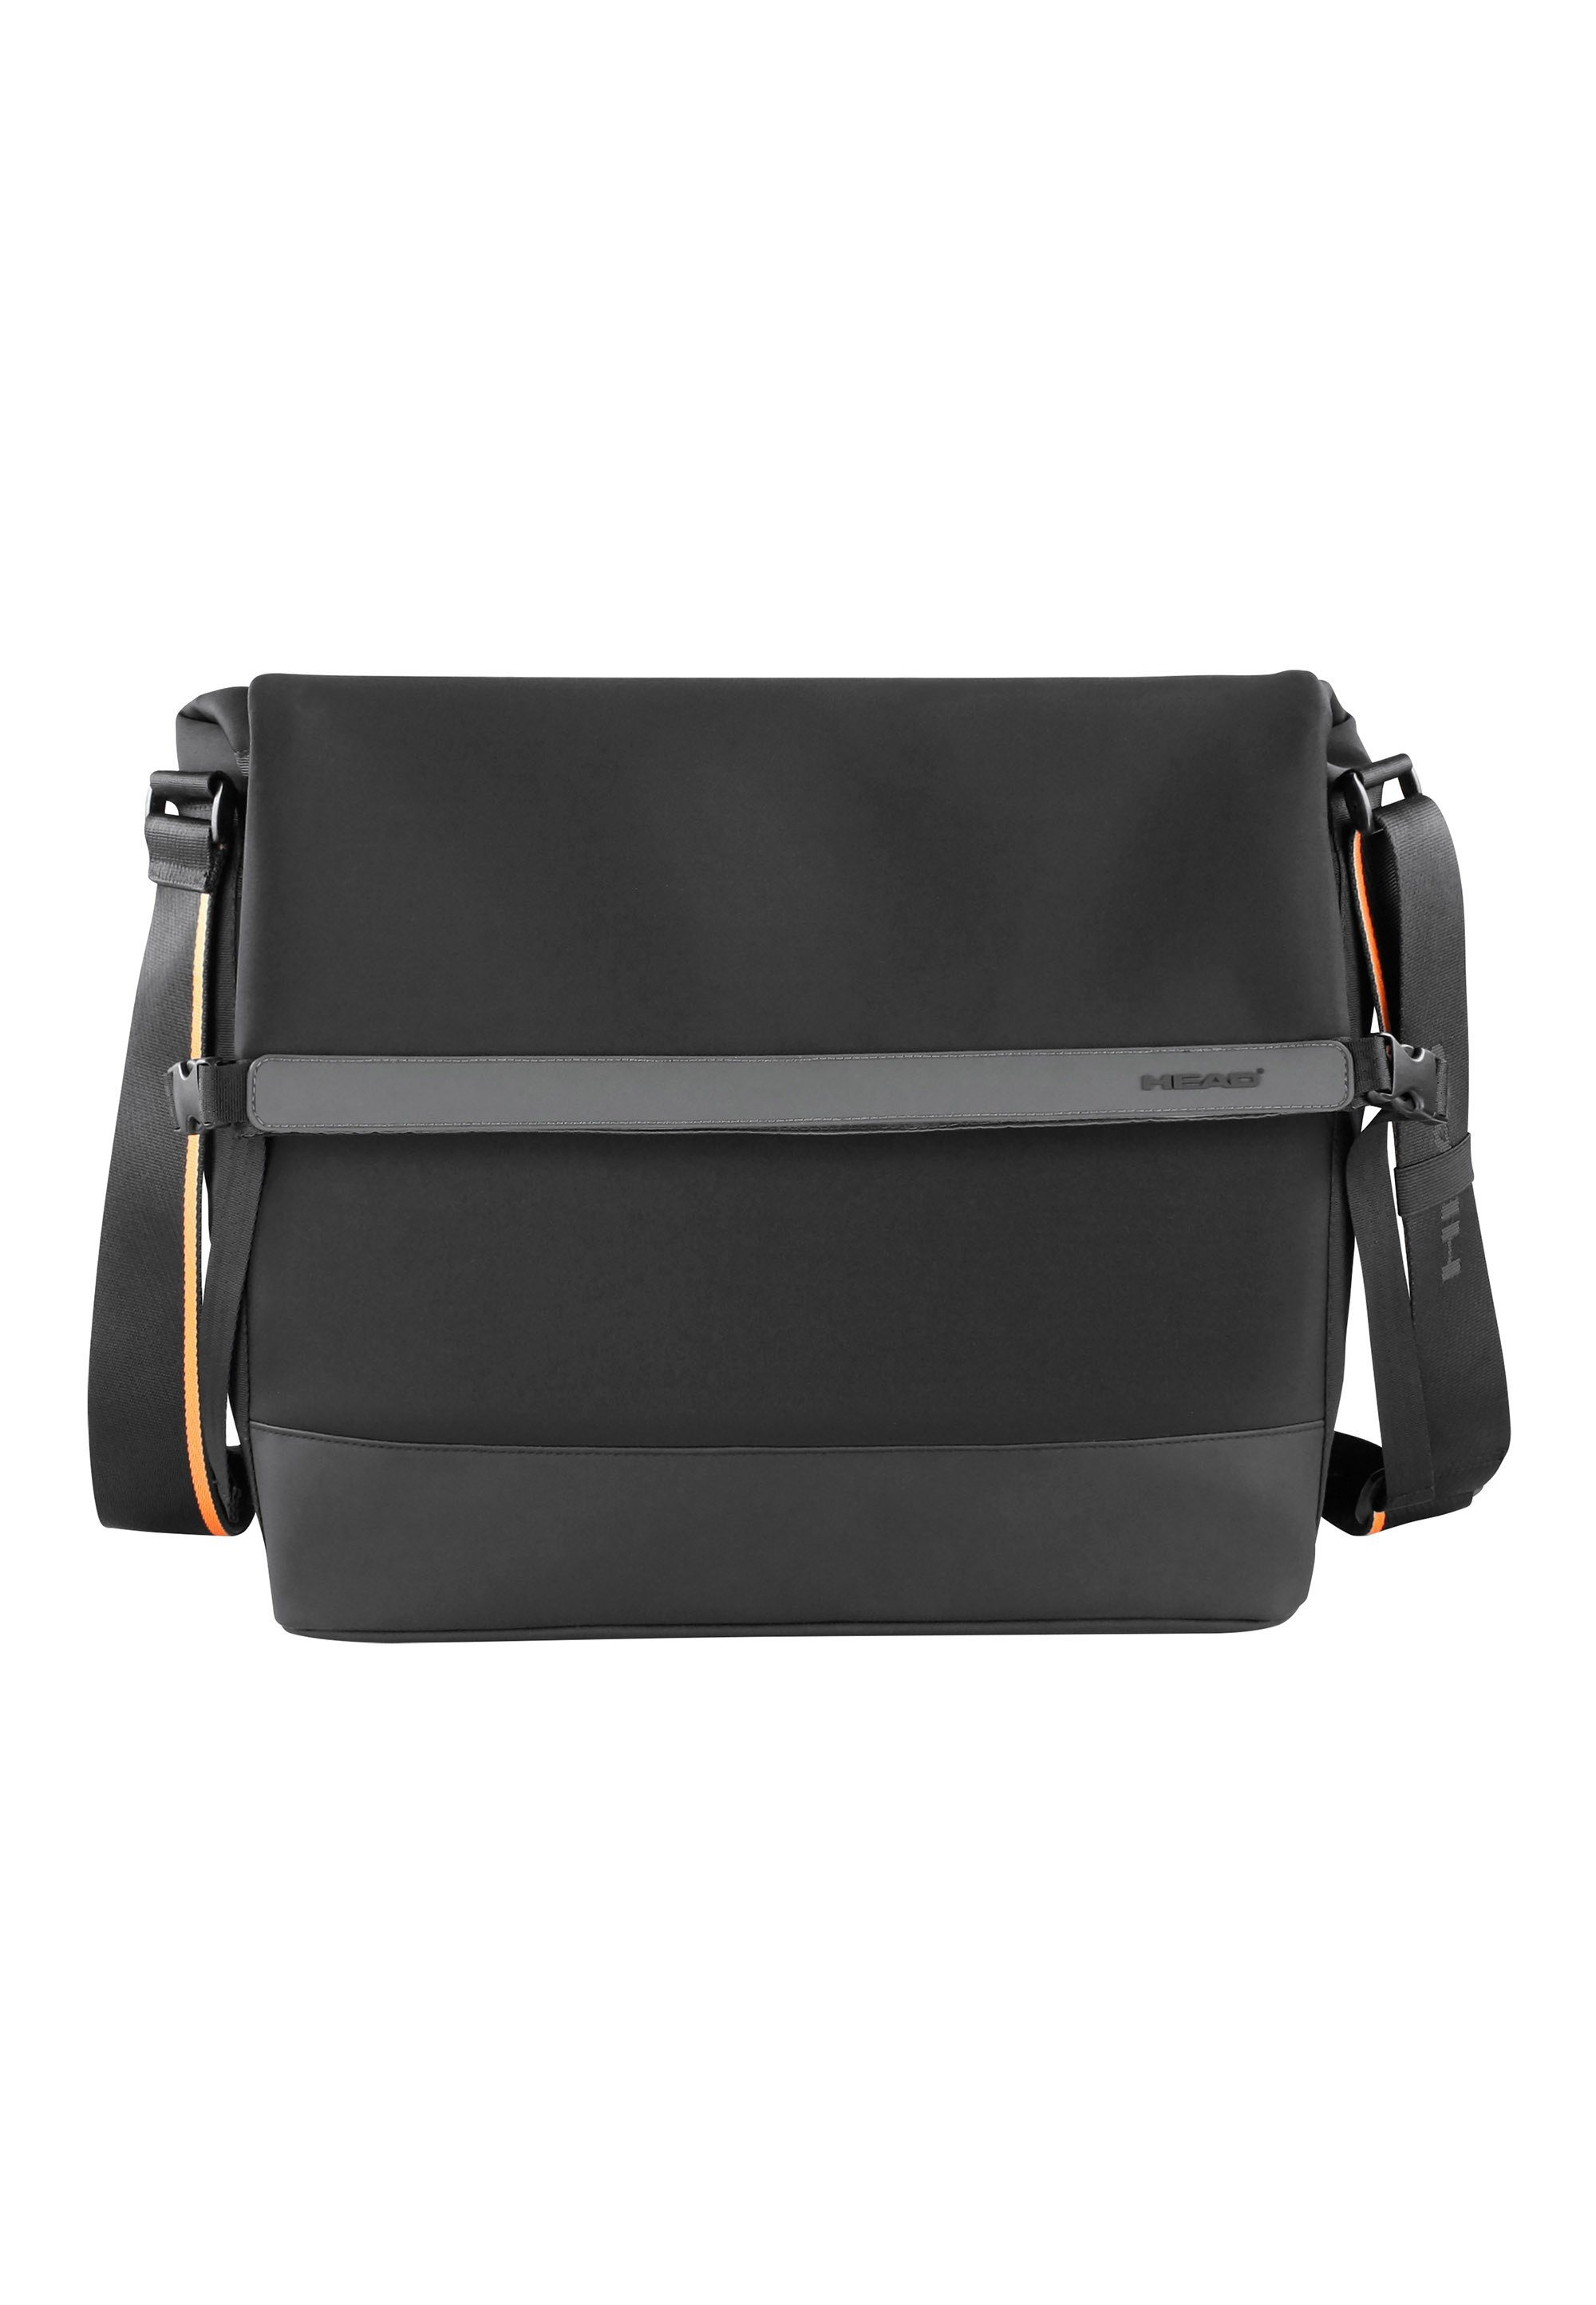 HEAD Messenger-Tasche mit Laptopfach